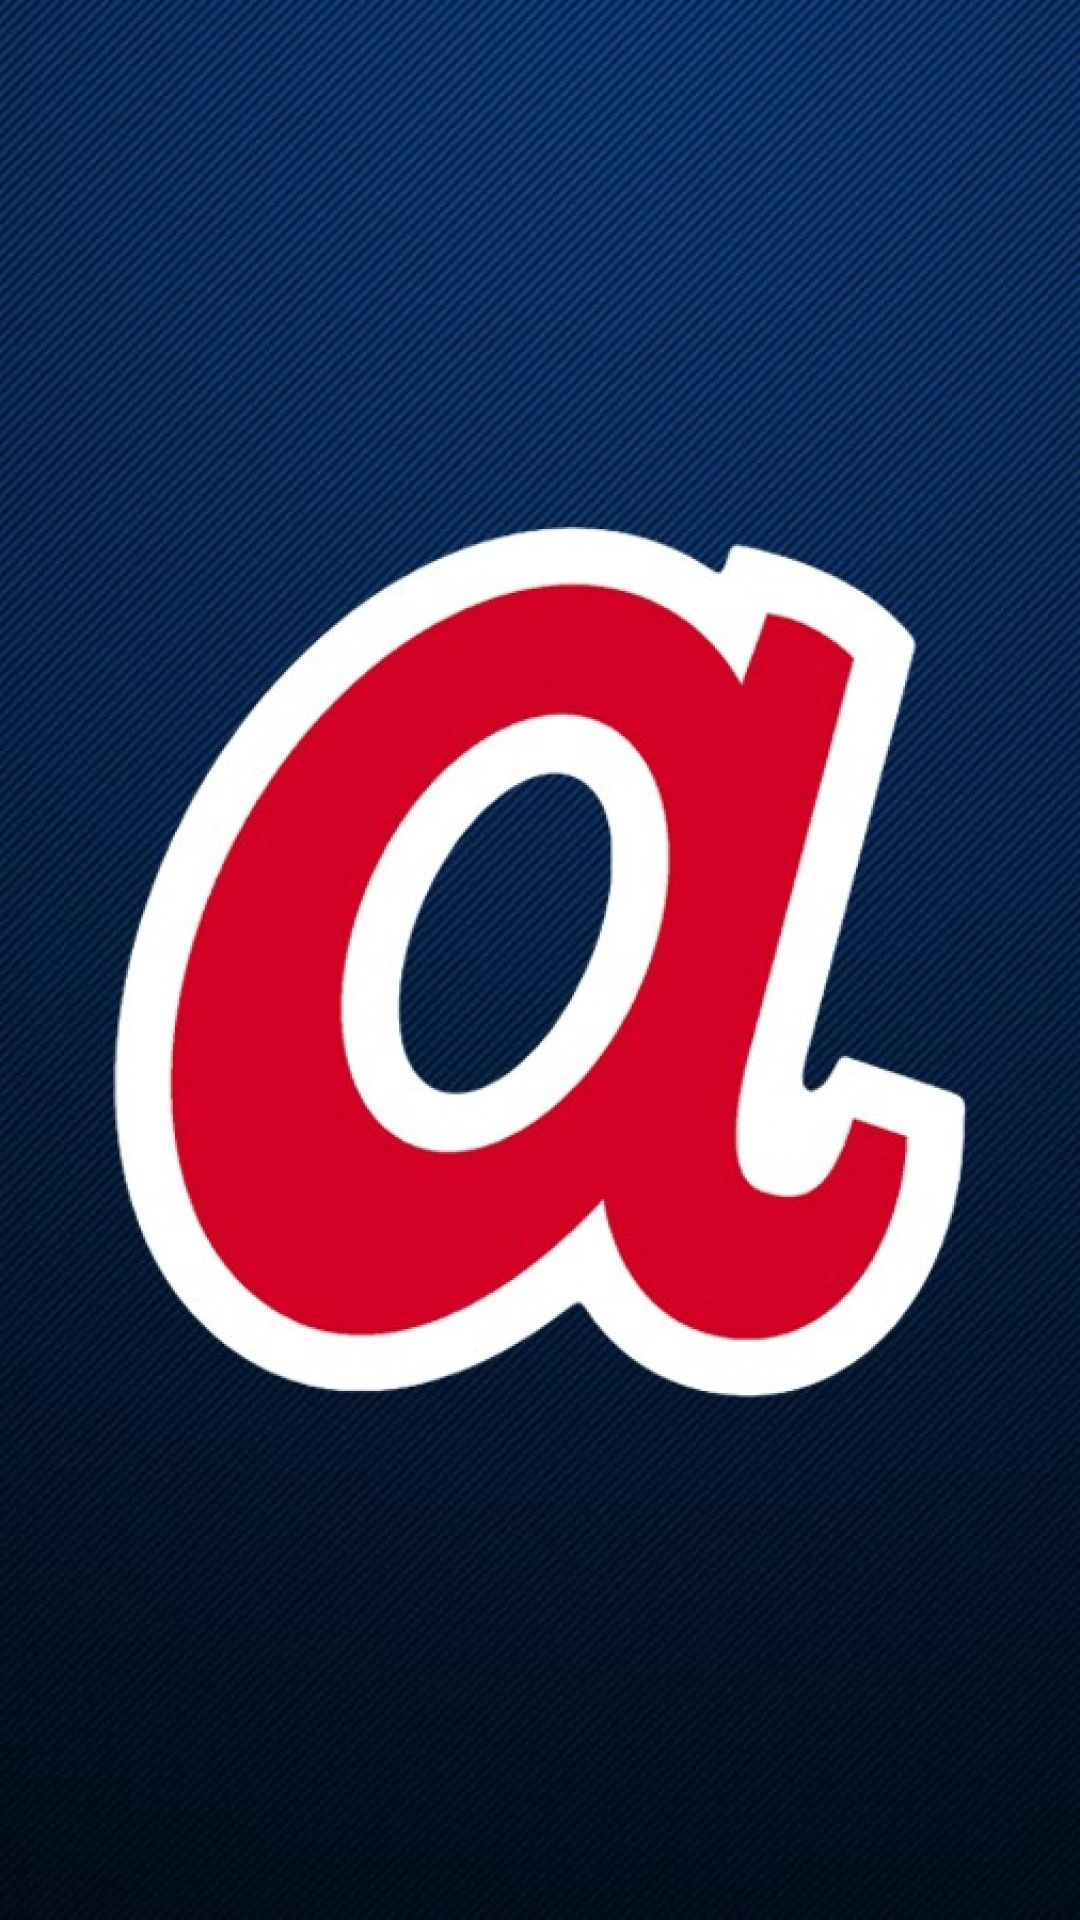 Http Mobw Org 15996 Atlanta Braves Wallpaper Android Html Atlanta Braves W Atlanta Braves Wallpaper Braves Iphone Wallpaper Atlanta Braves Iphone Wallpaper